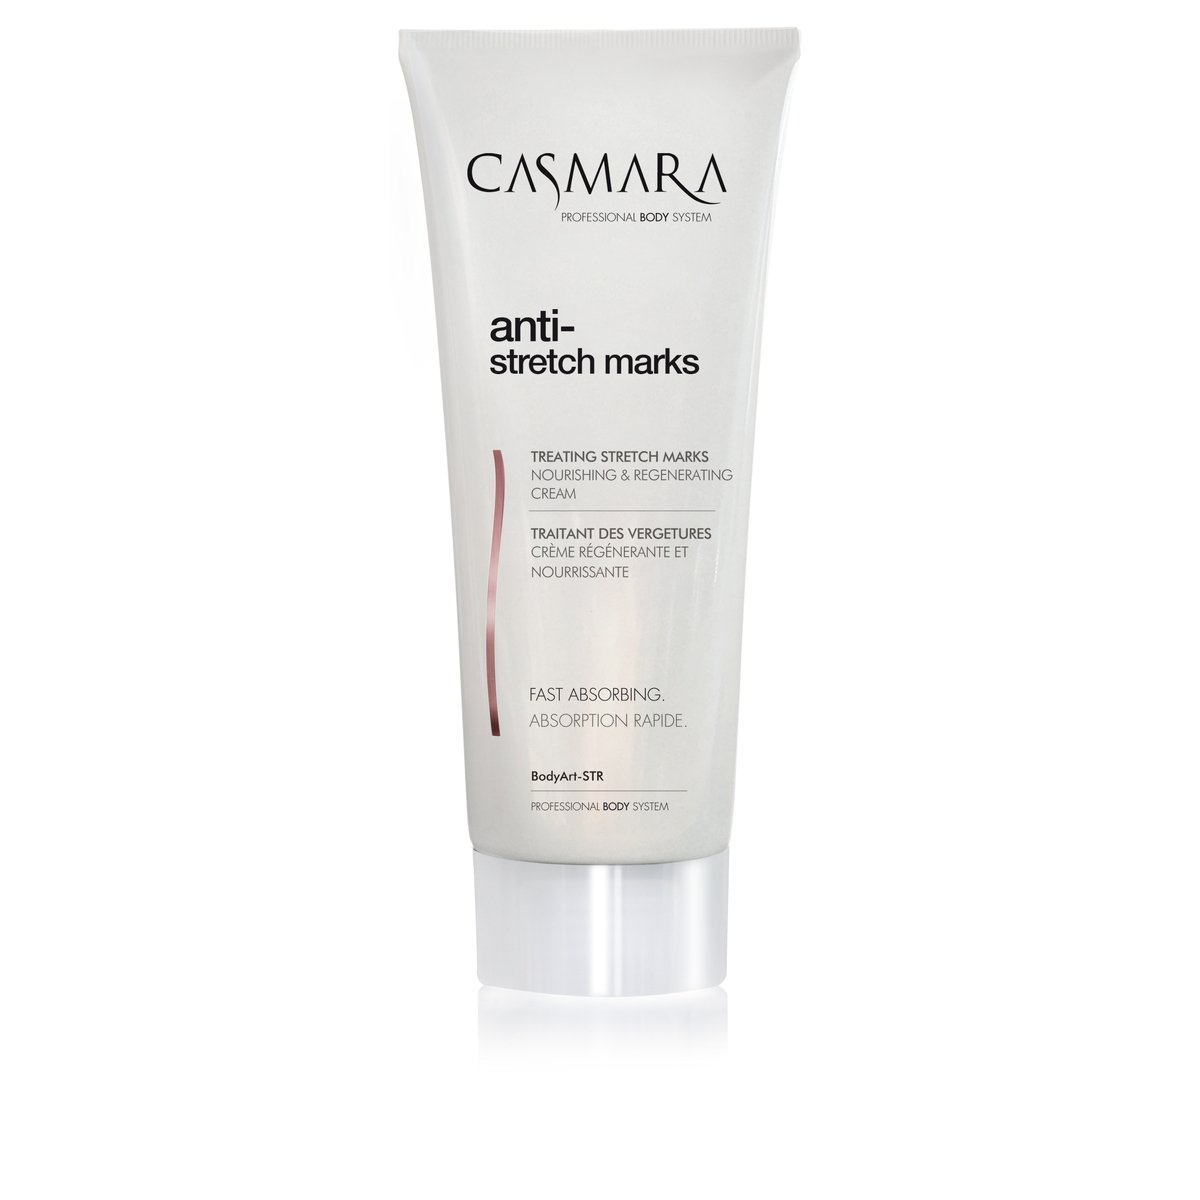 Amazon.com : Casmara Anti-Stretch Marks 200 ml Nourishing Regenerating Body Cream : Beauty